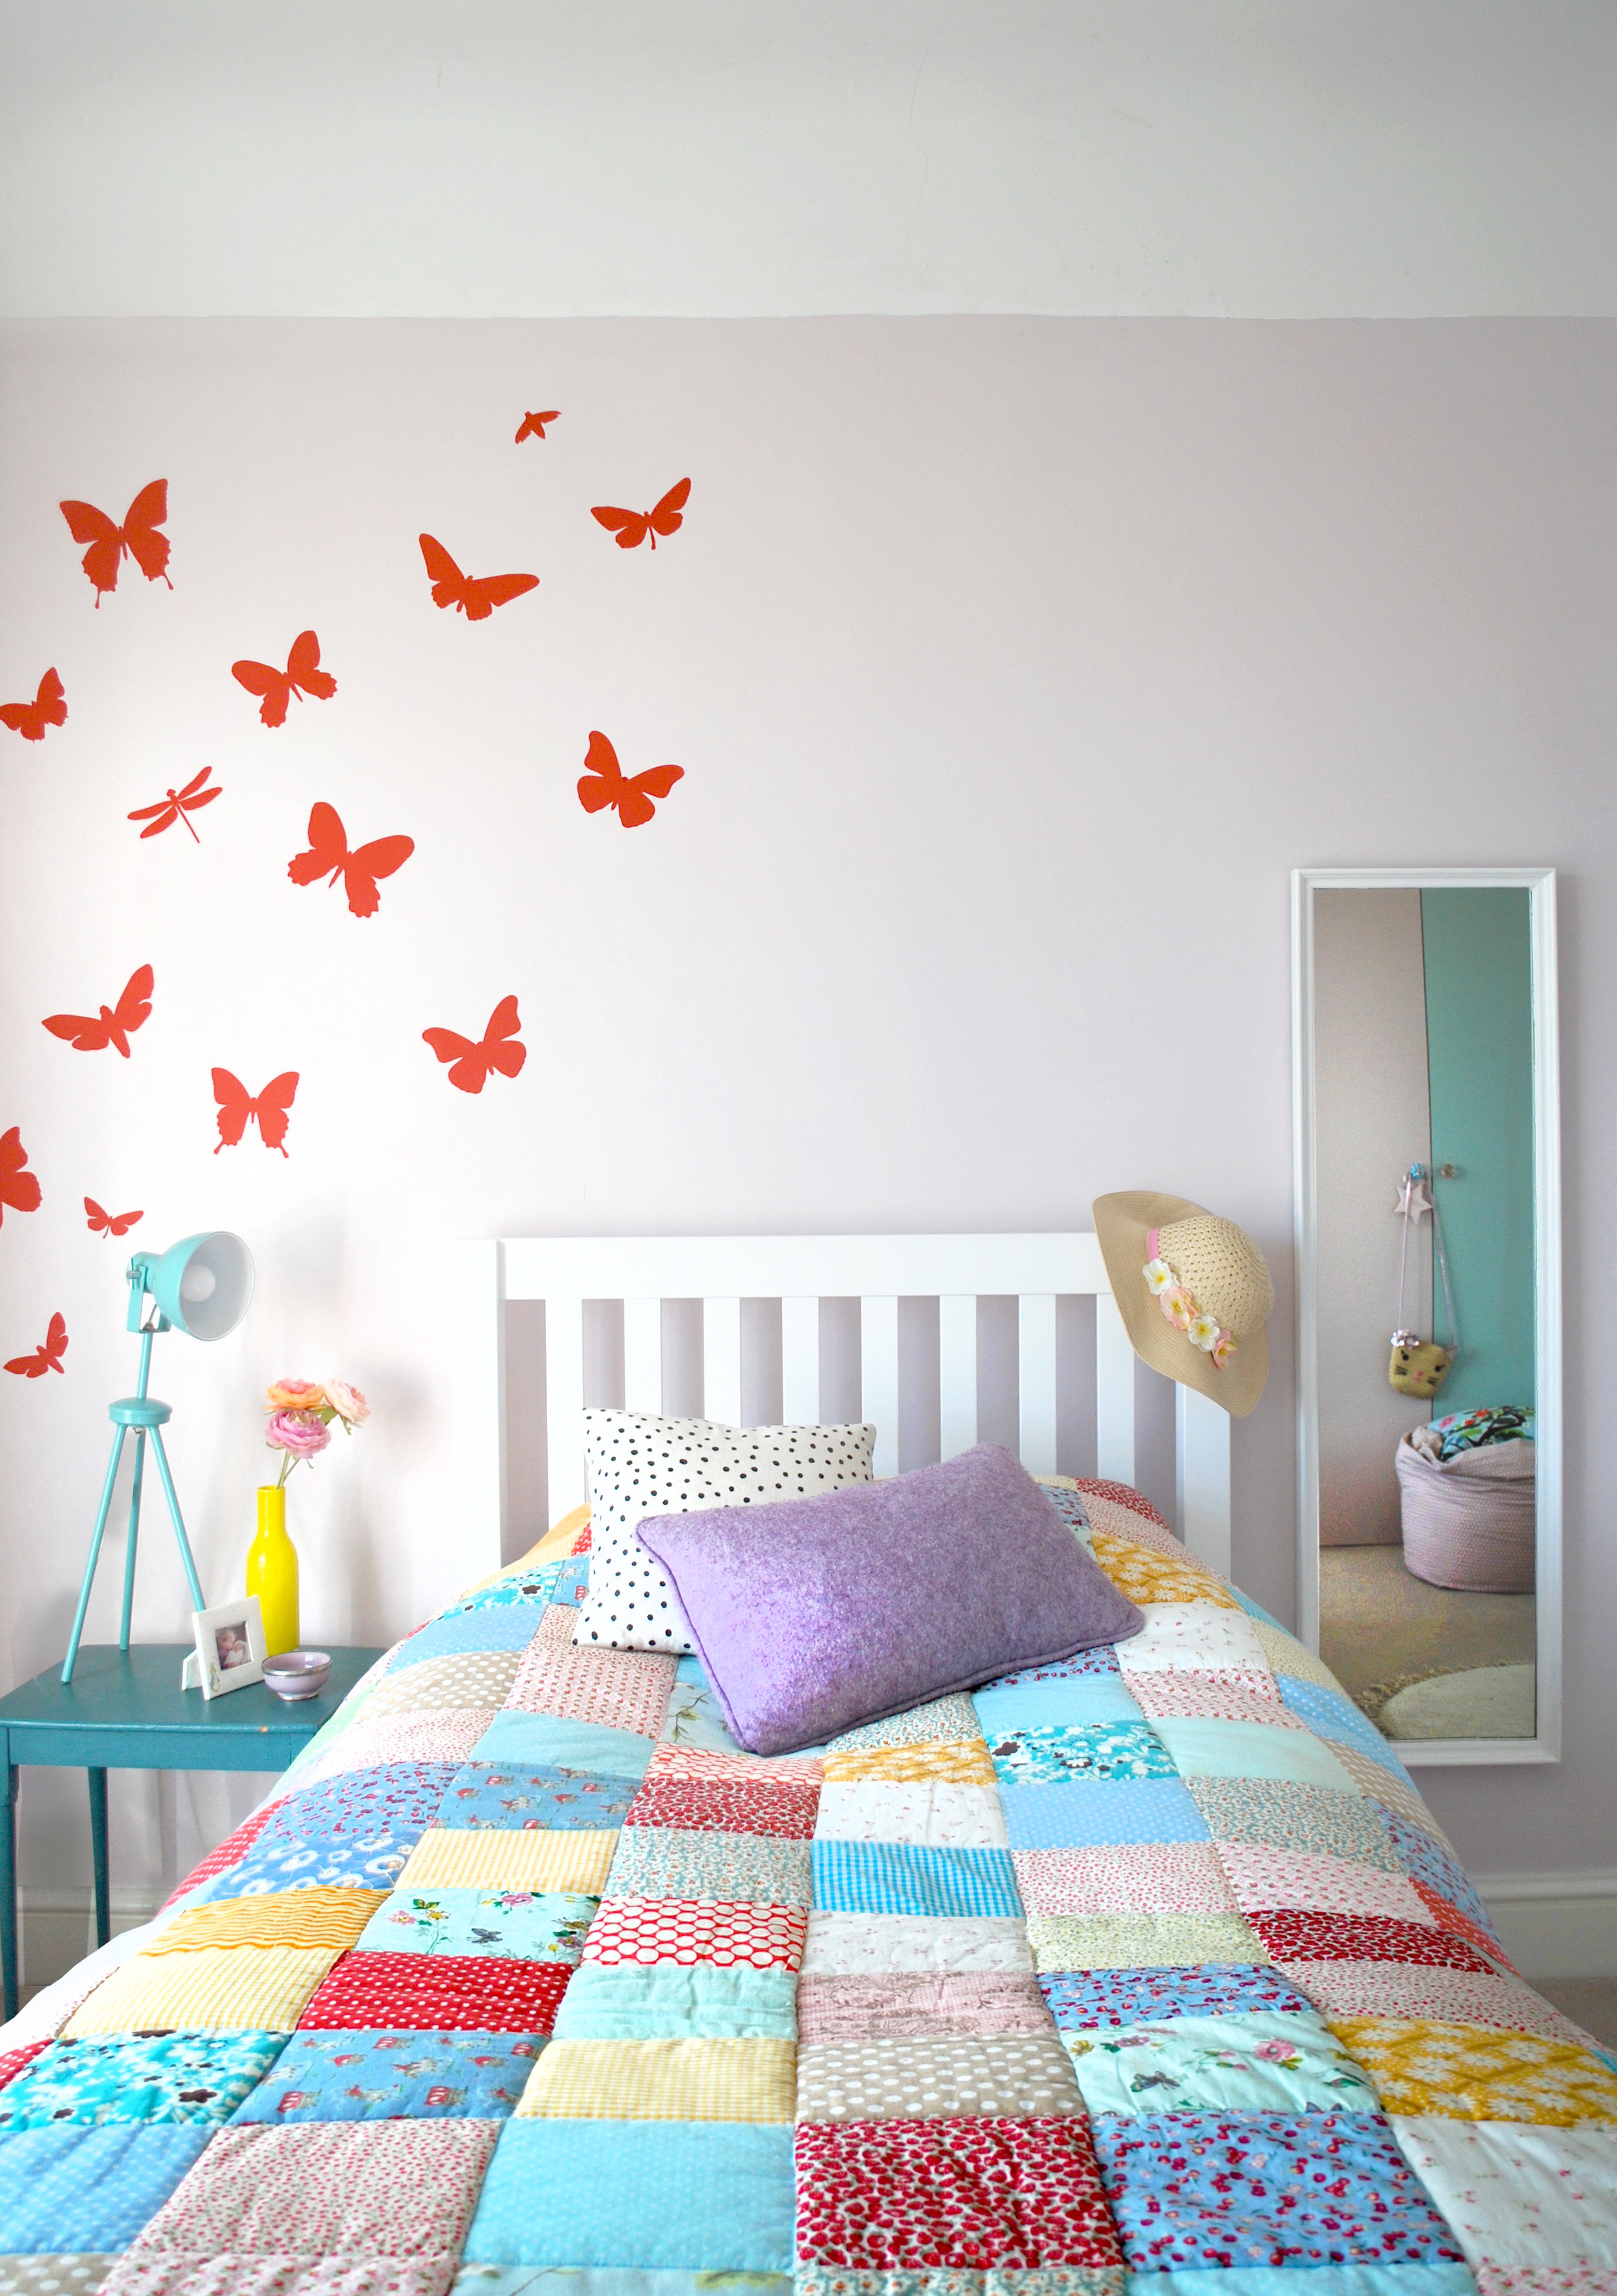 Girls pink and butterfly bedroom design.jpg